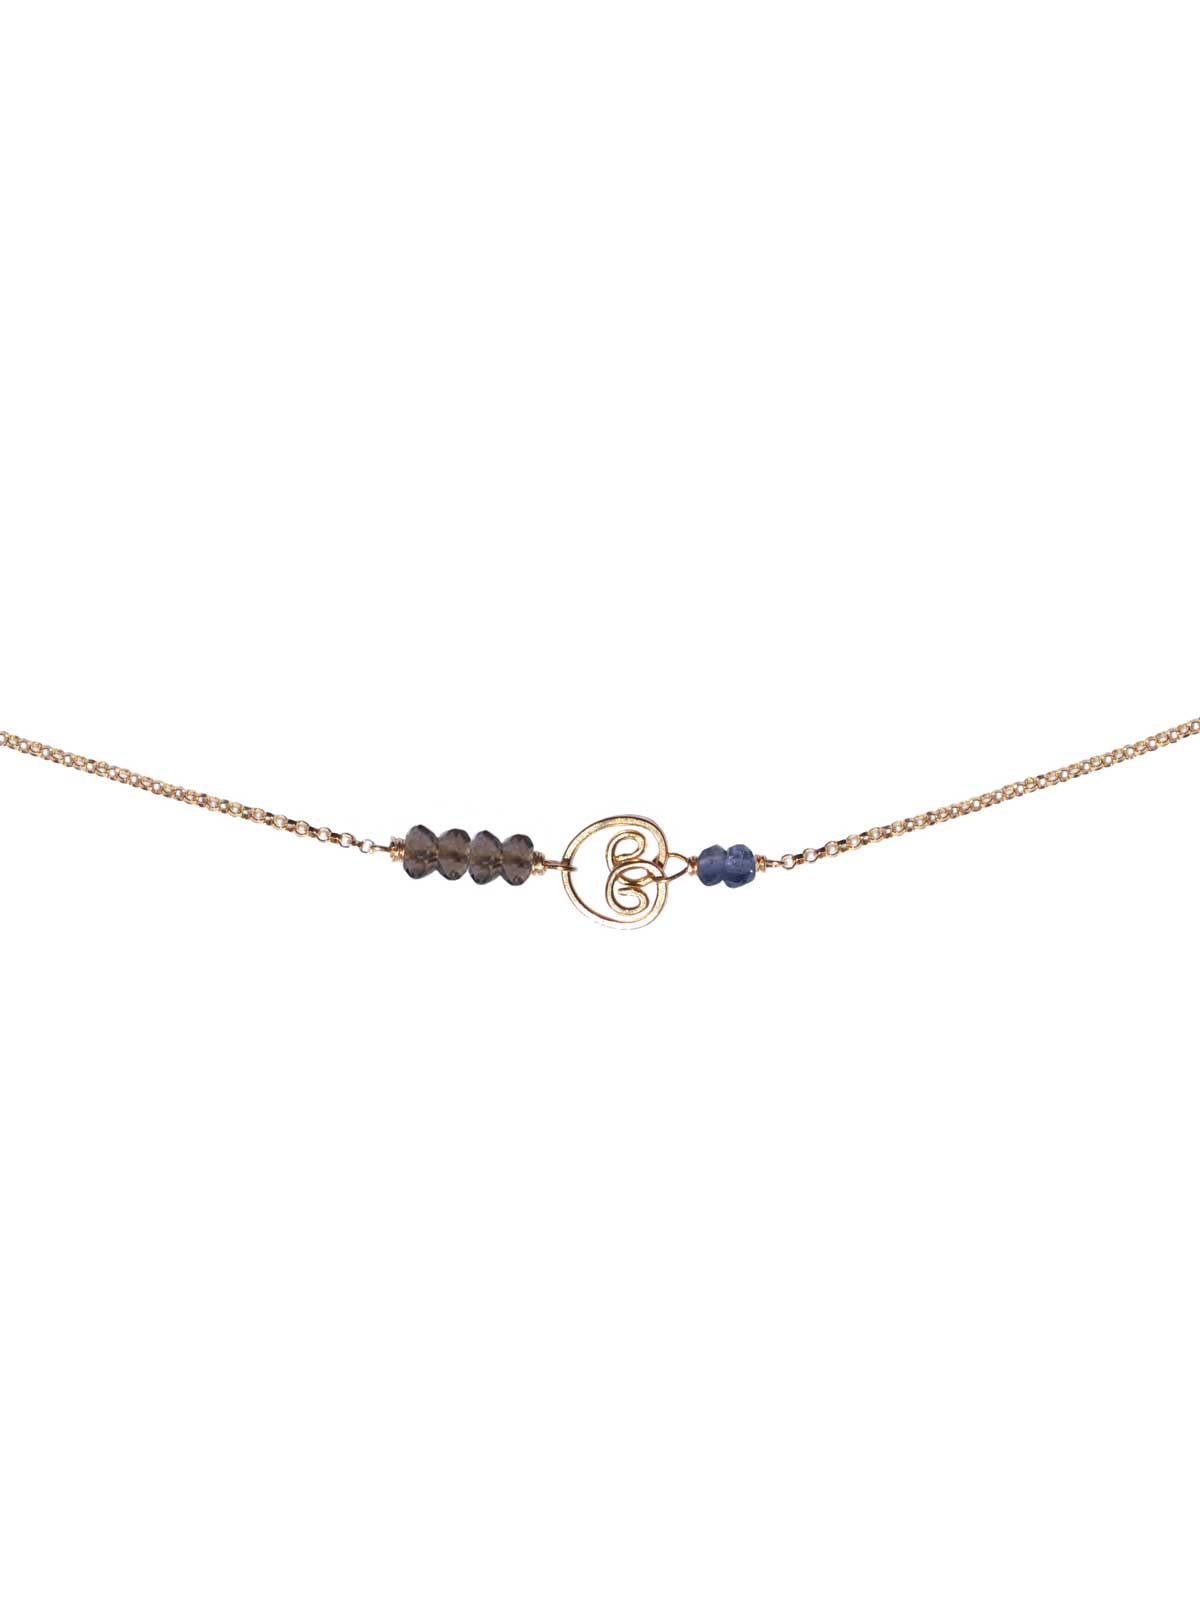 Necklace 14K Gold-filled chain and semi-precious stones faceted Smoky Quartz Iolite